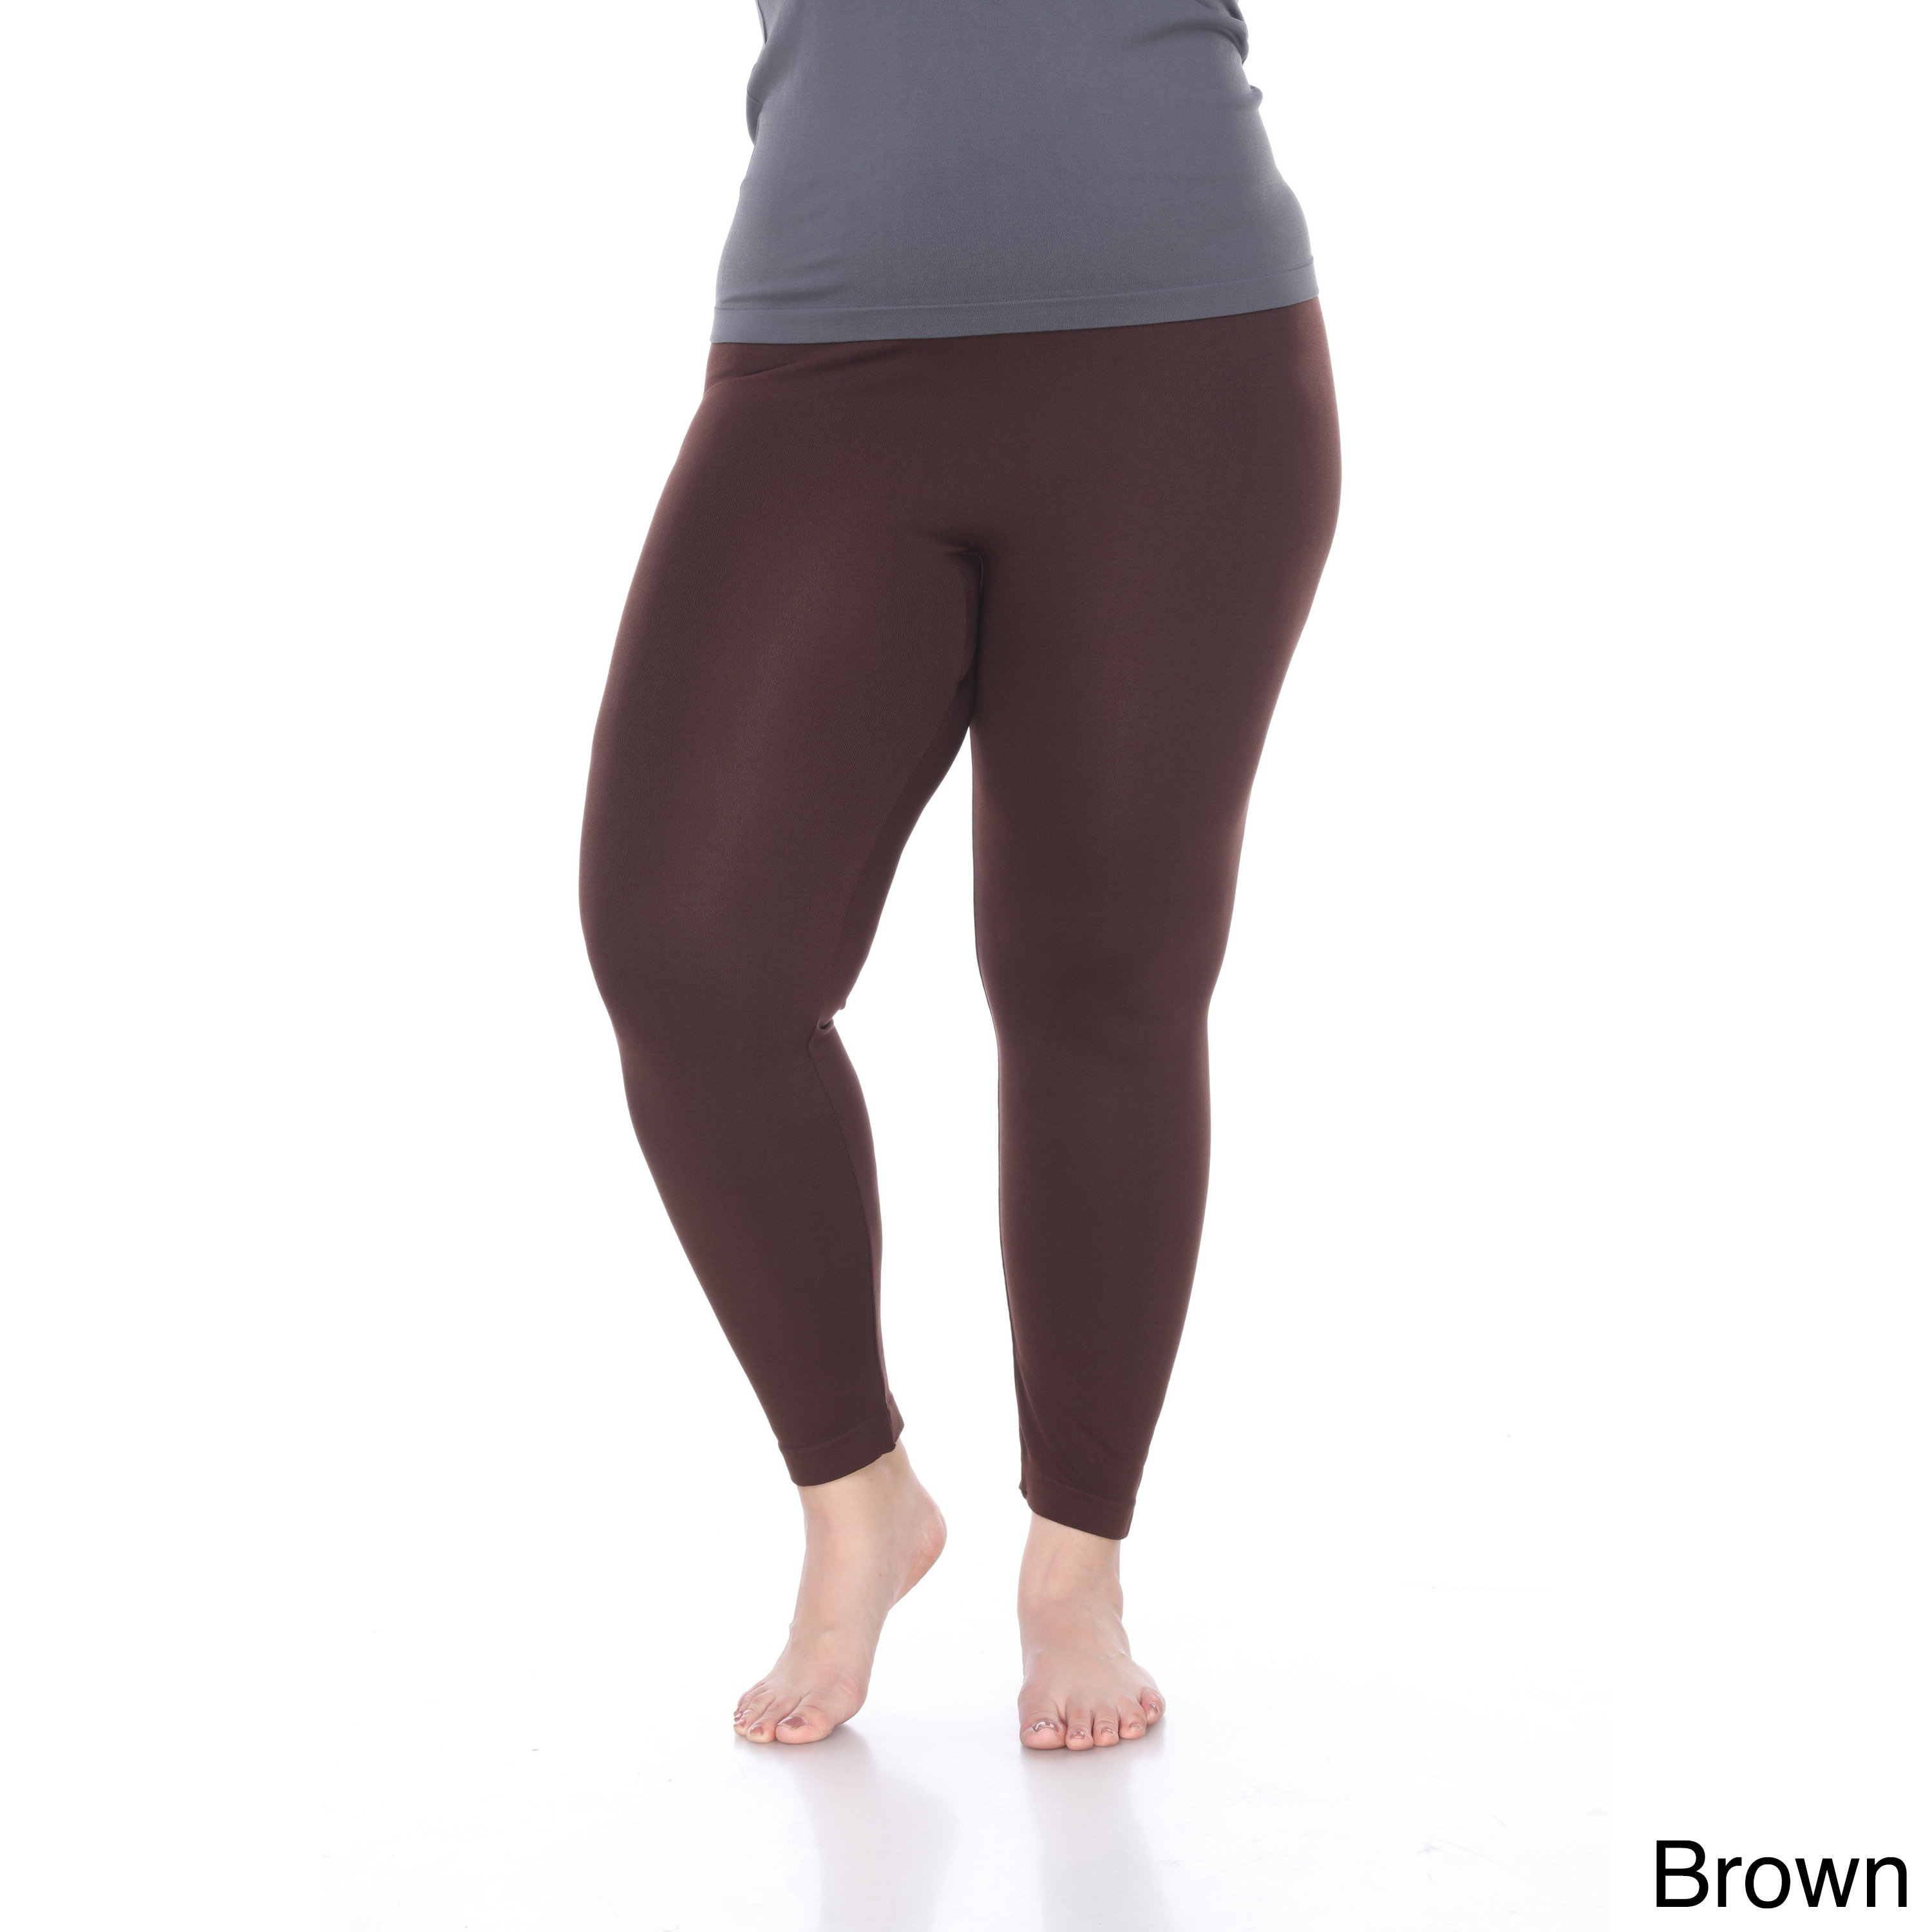 7dfa88a927bba7 Shop White Mark Women's Plus Size Super-stretch Solid Leggings - Free  Shipping On Orders Over $45 - Overstock - 11951246